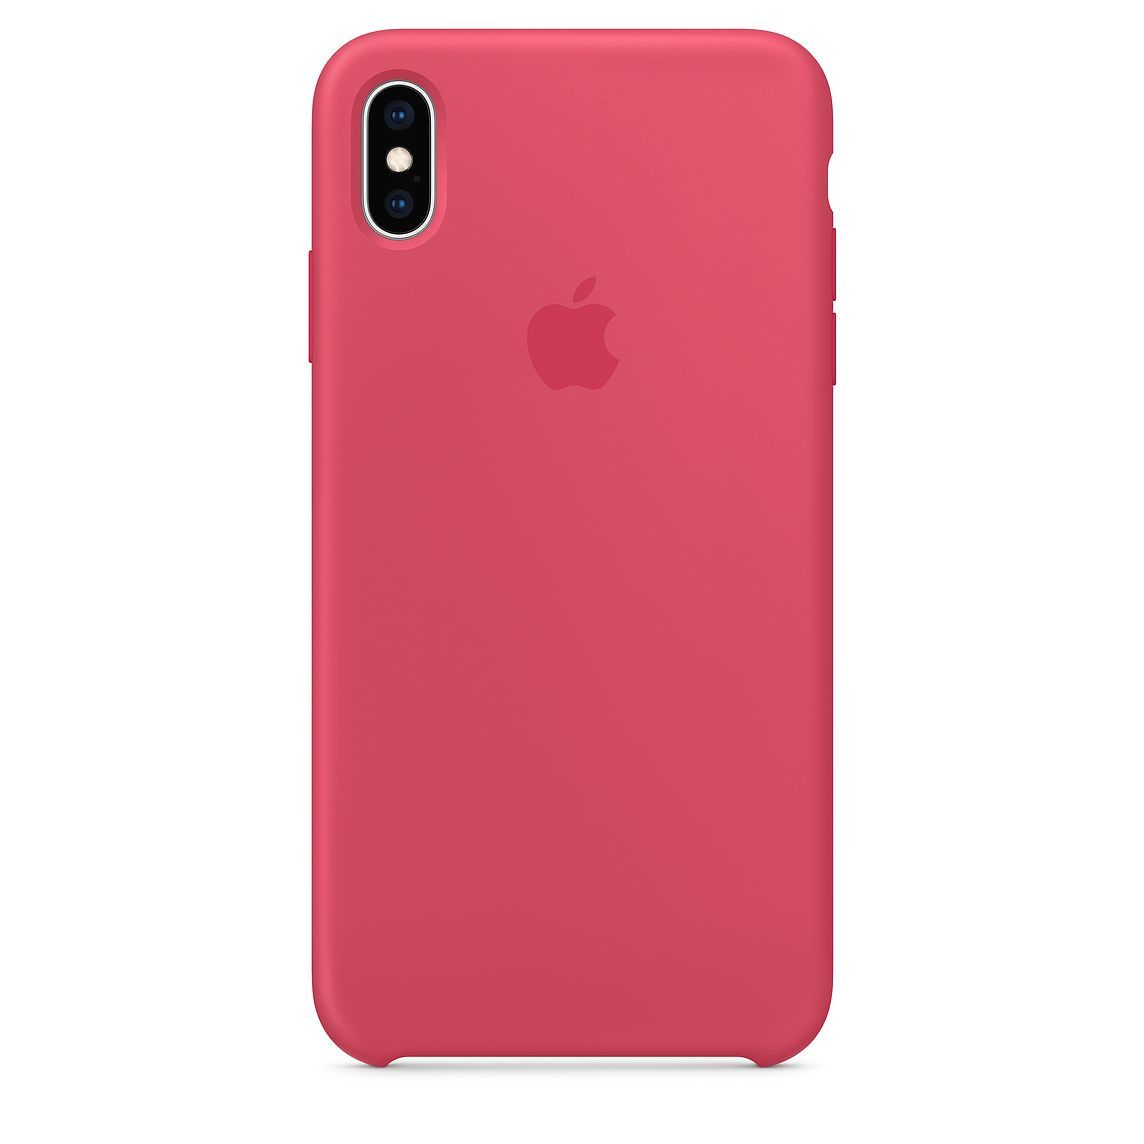 iPhone XS Max Silicone Case - Pink Sand | Silicone iphone cases ...